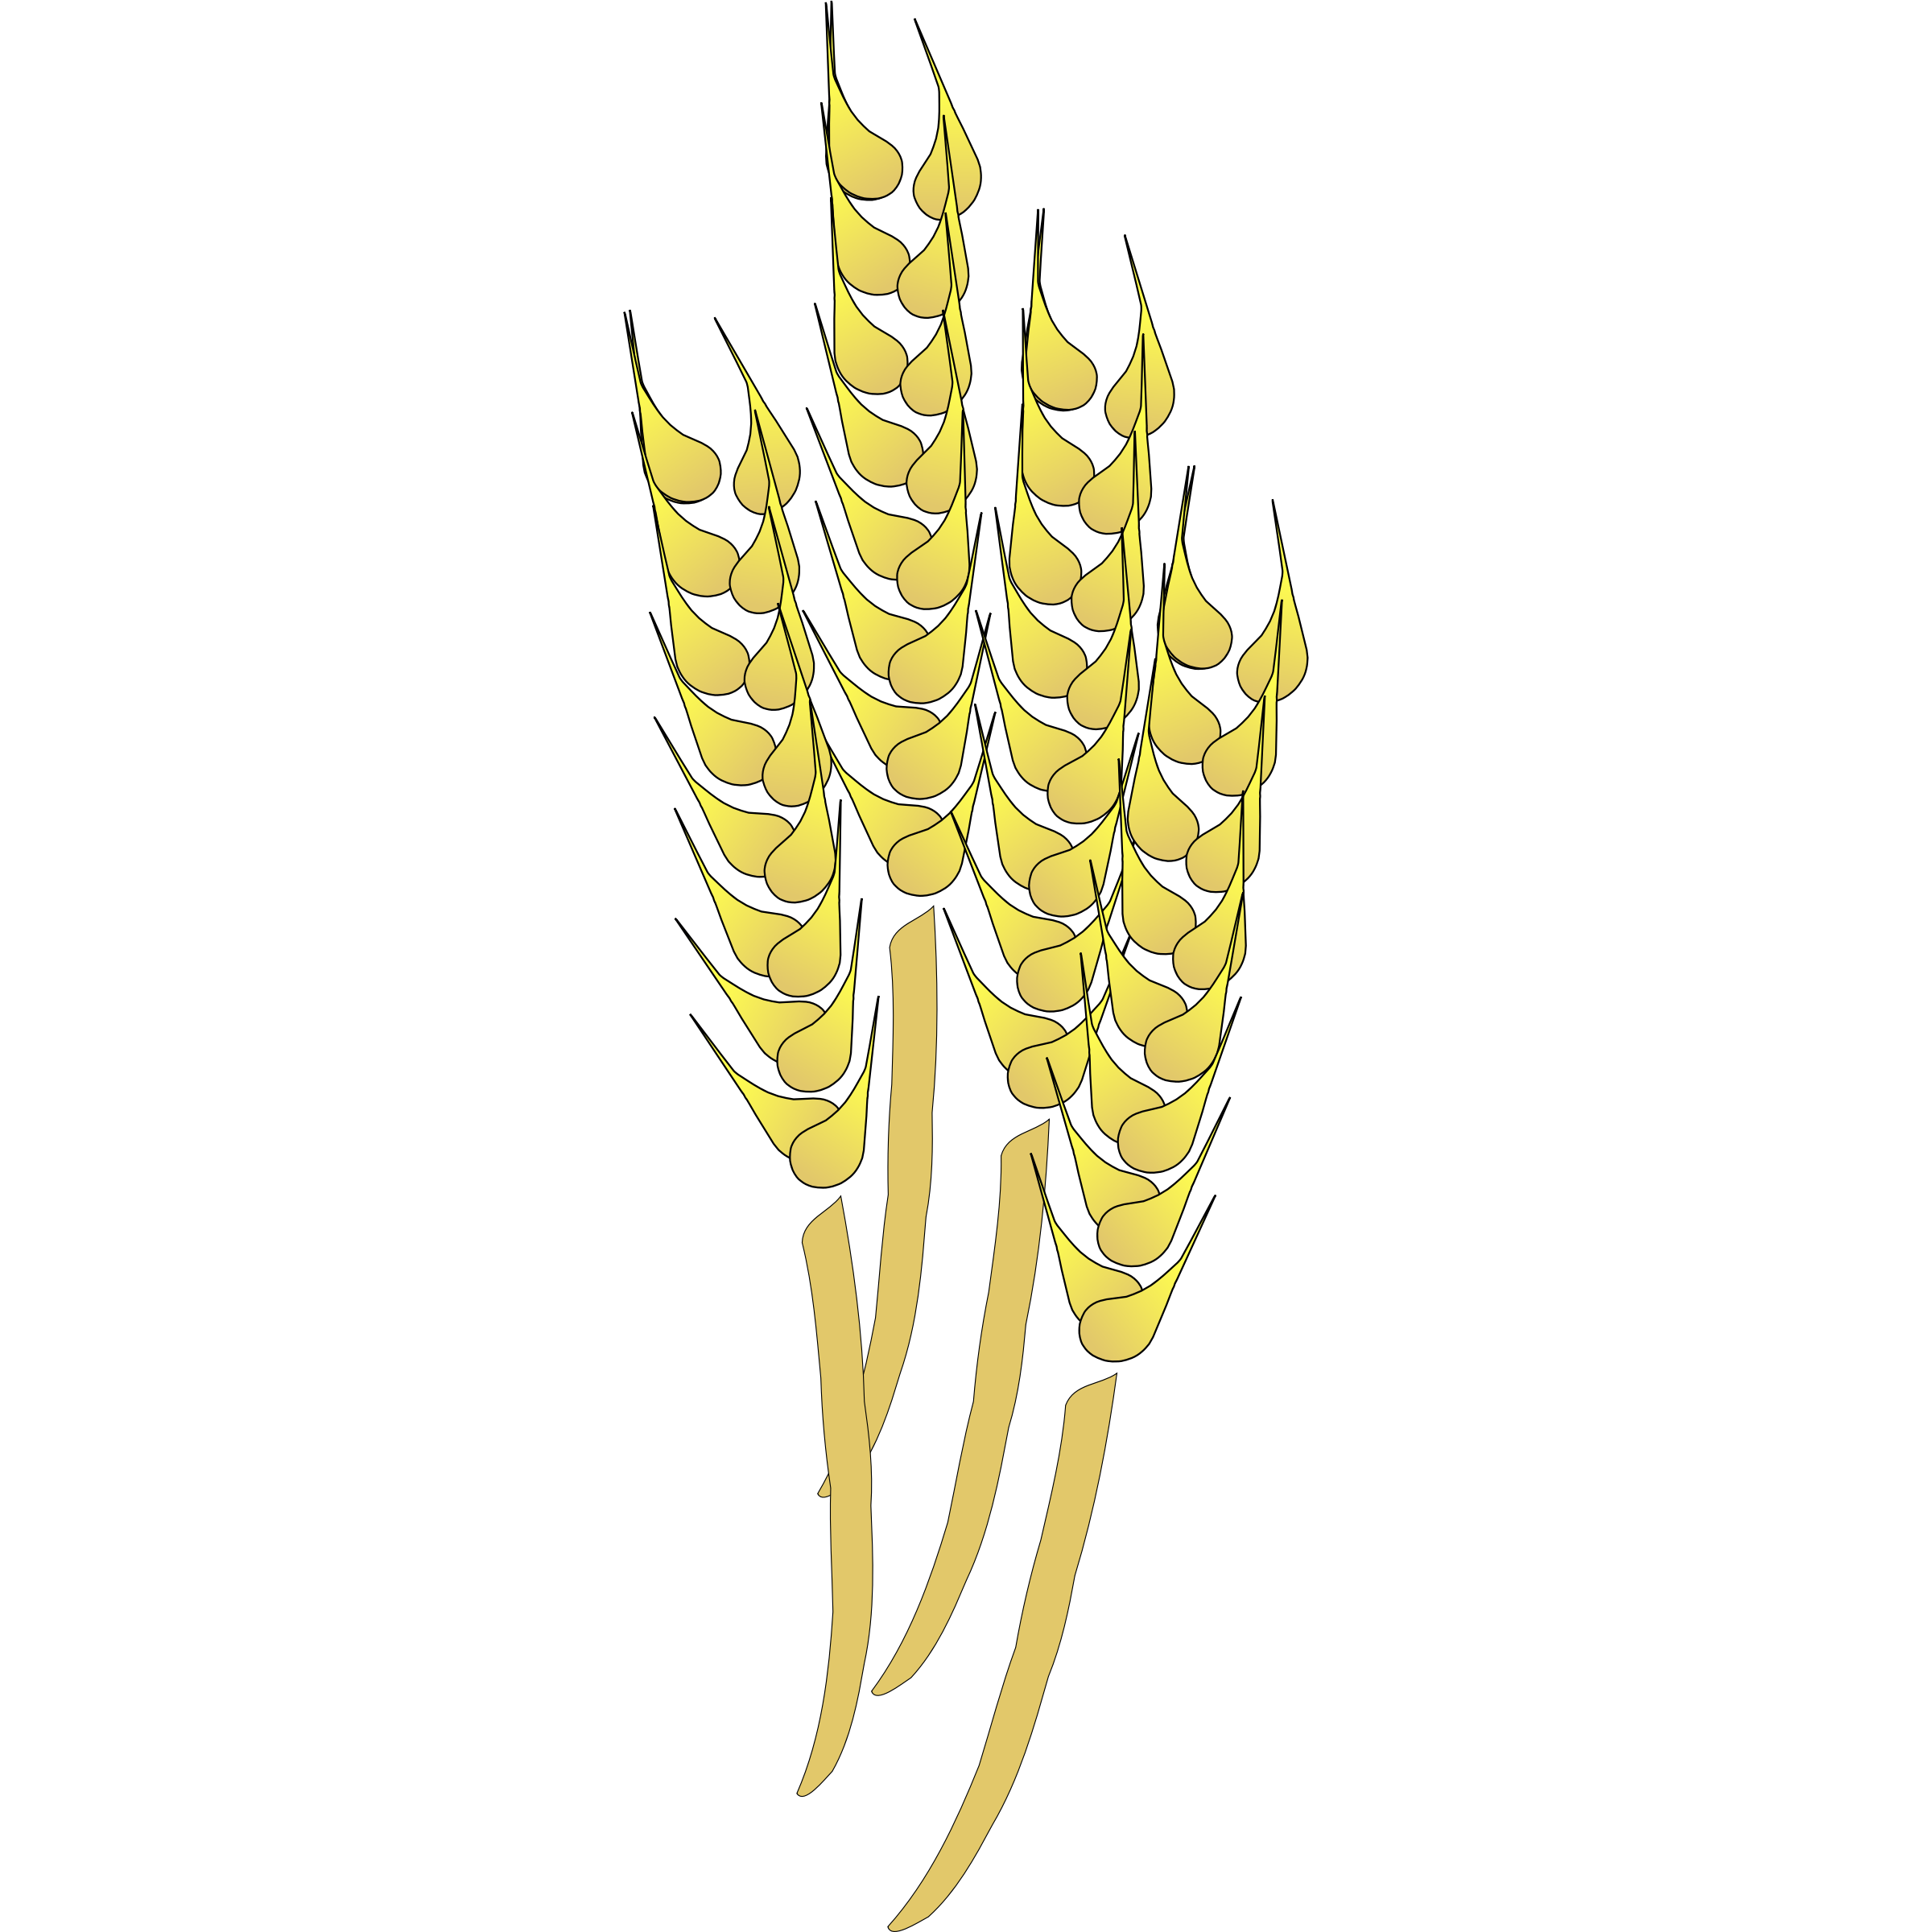 Wheat clipart gold paisley. Stalk free on dumielauxepices